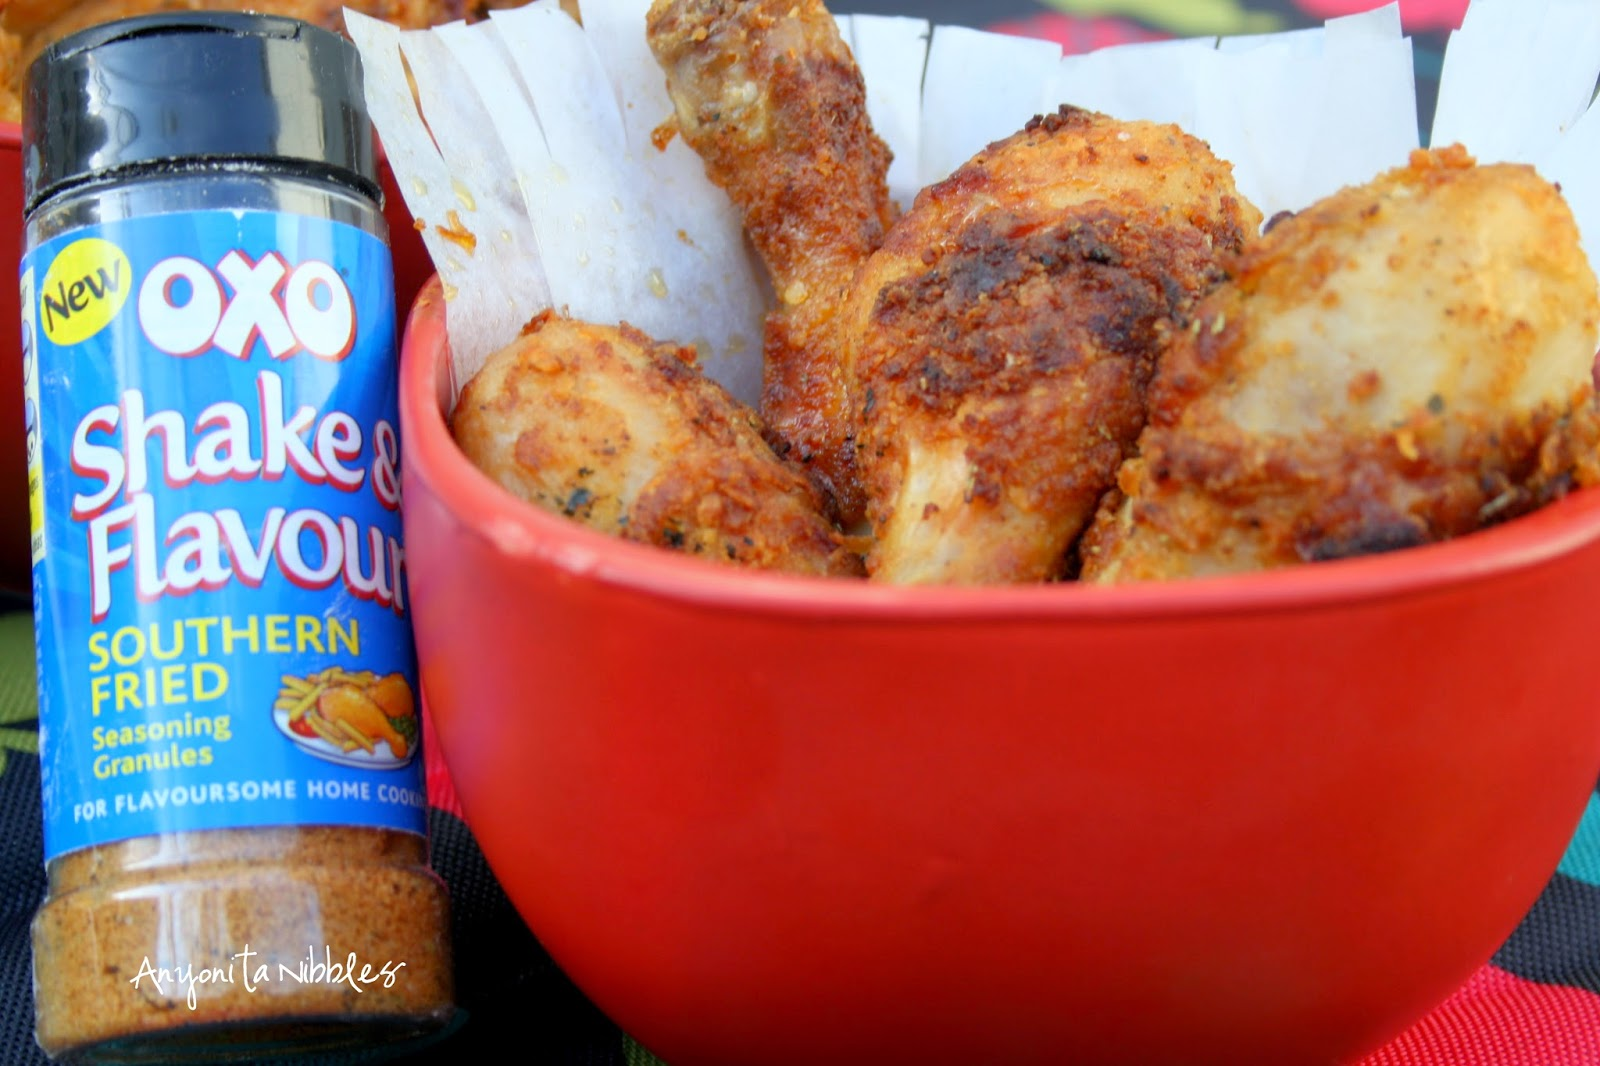 A bowl of OXO Shake & Flavour Southern Fried Chicken Legs from Anyonita Nibbles